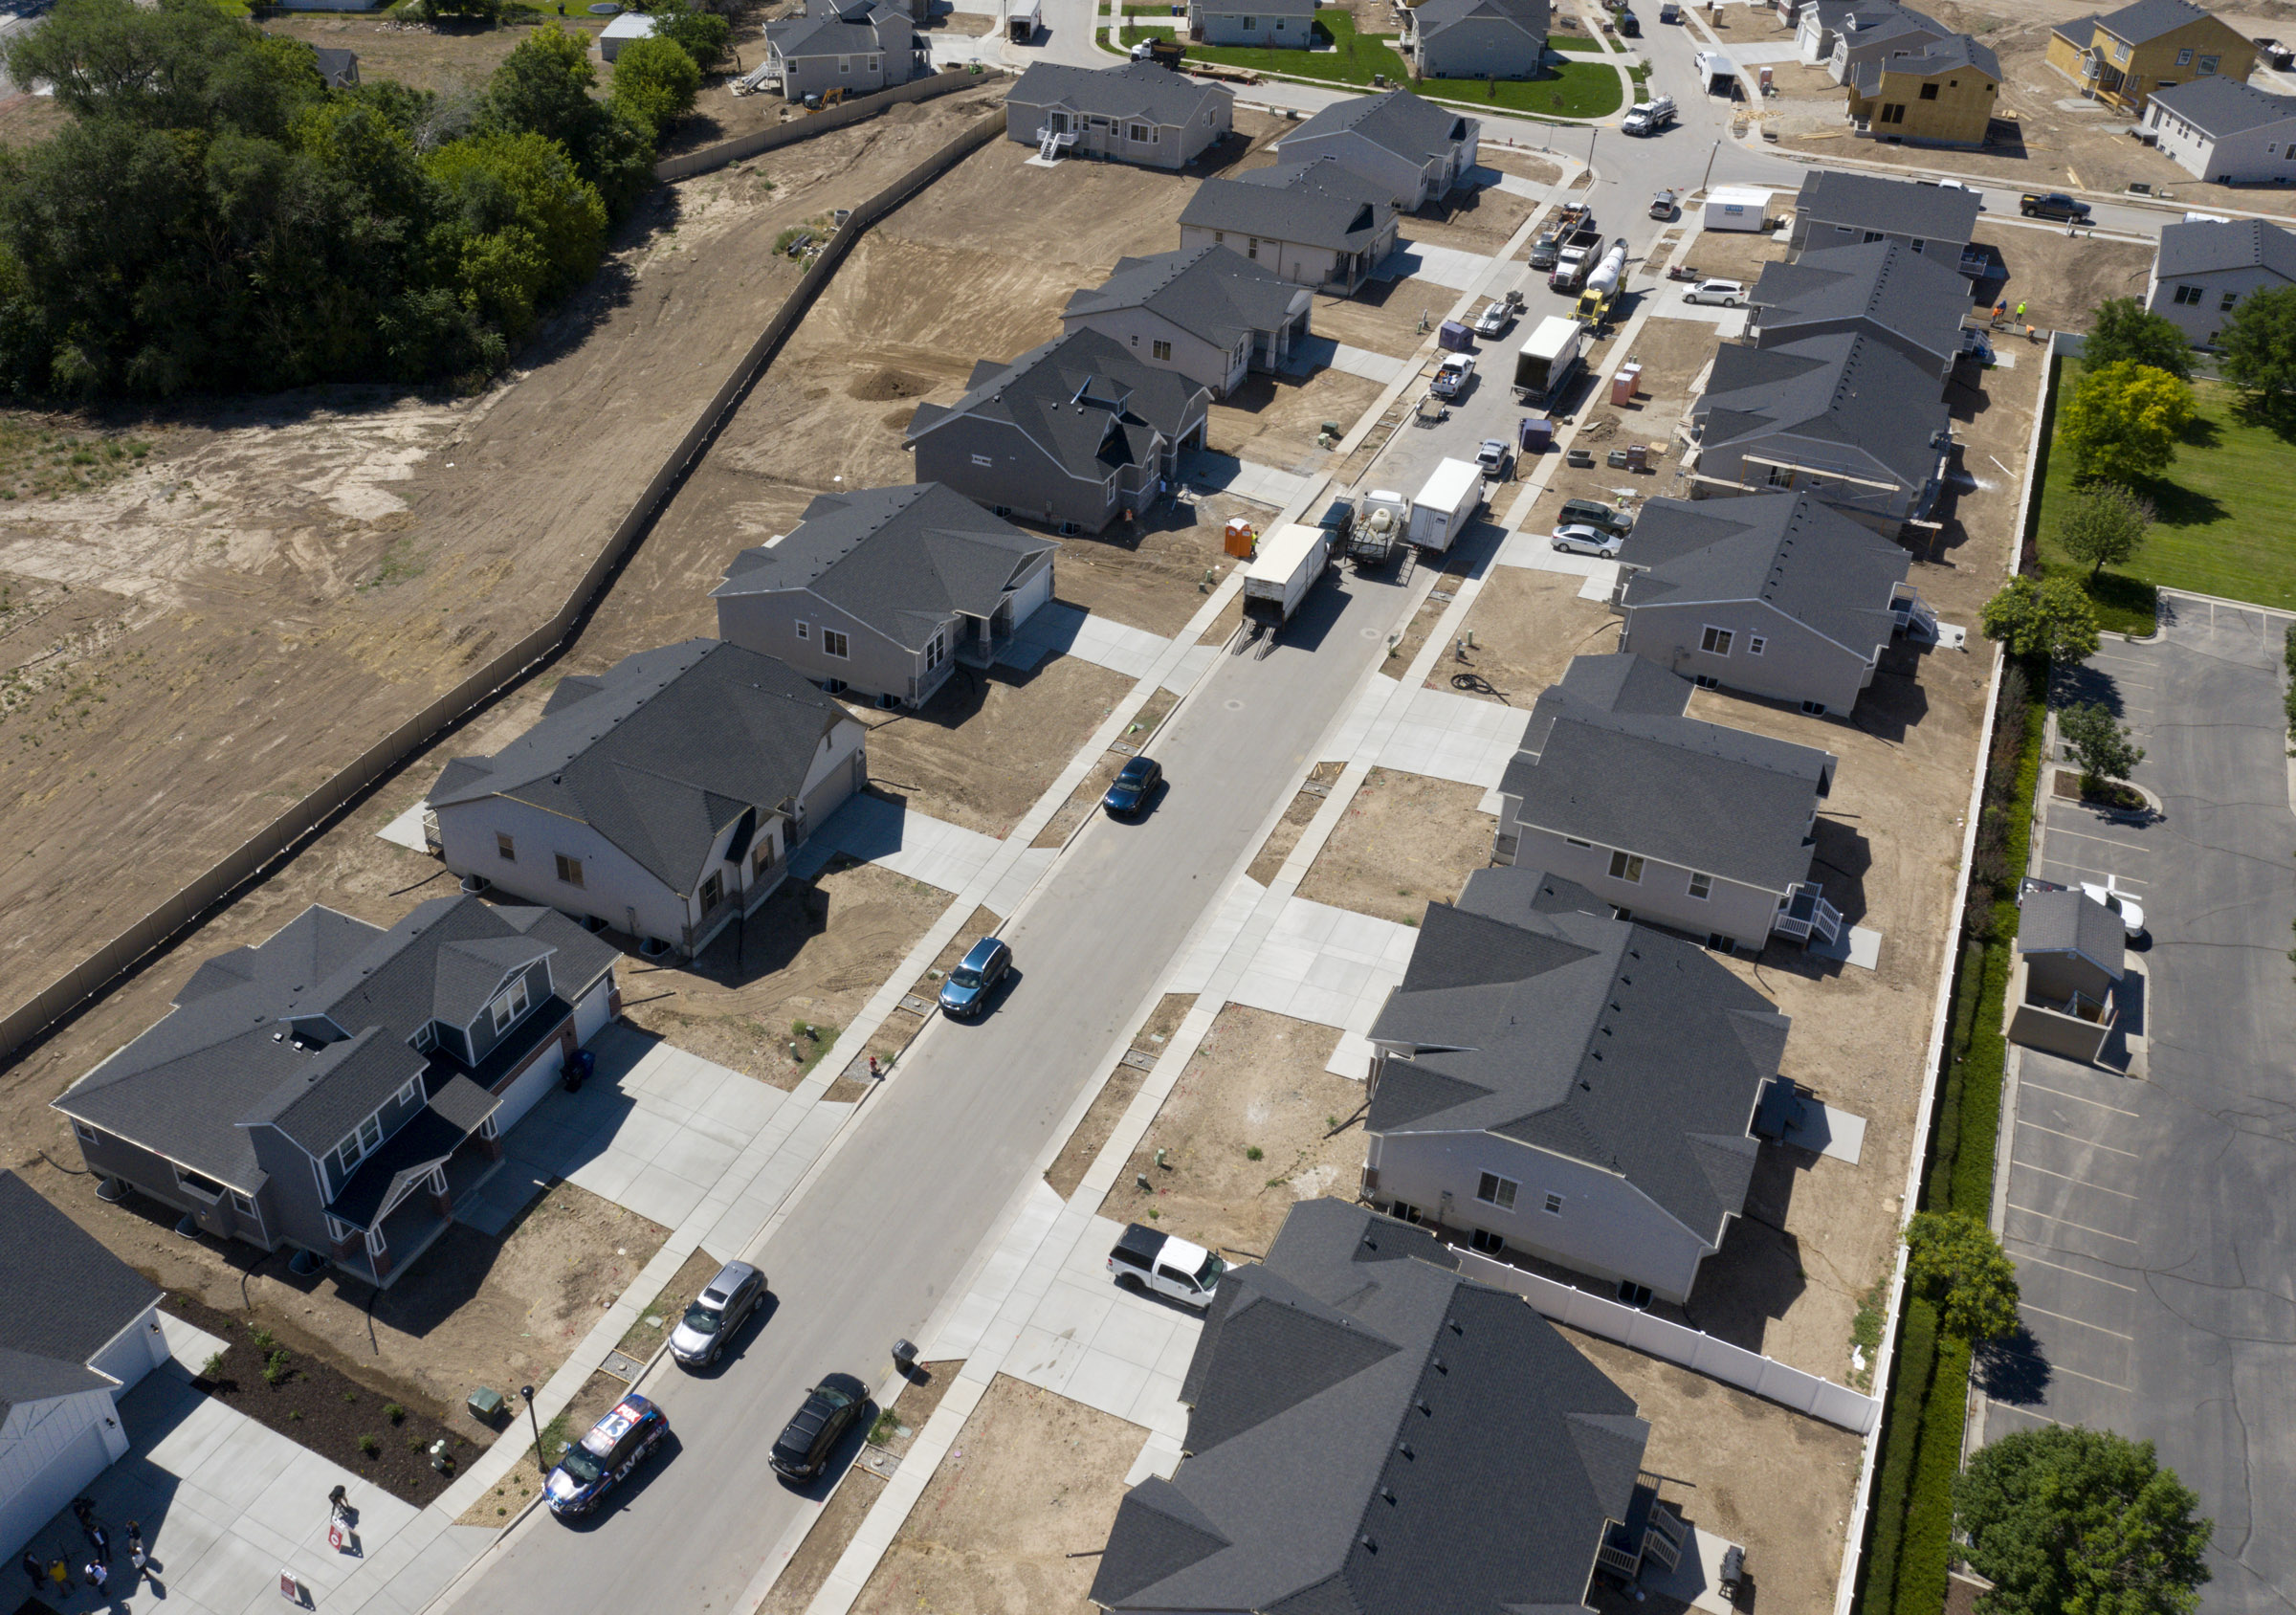 Homes near completion at C.W. Farms, an Ivory Homes development in Magna, on July 29, 2020. The Salt Lake City metro area is the third-most competitive housing market in the nation, according to a July ranking by Redfin, behind only Boston and San Diego. Robert Spendlove, Zions Bank senior economist, and Mike Gould, mortgage division manager for Zions Bancorporation, talked about the current state of and outlook for Utah's housing market during a press conference at the new subdivision.